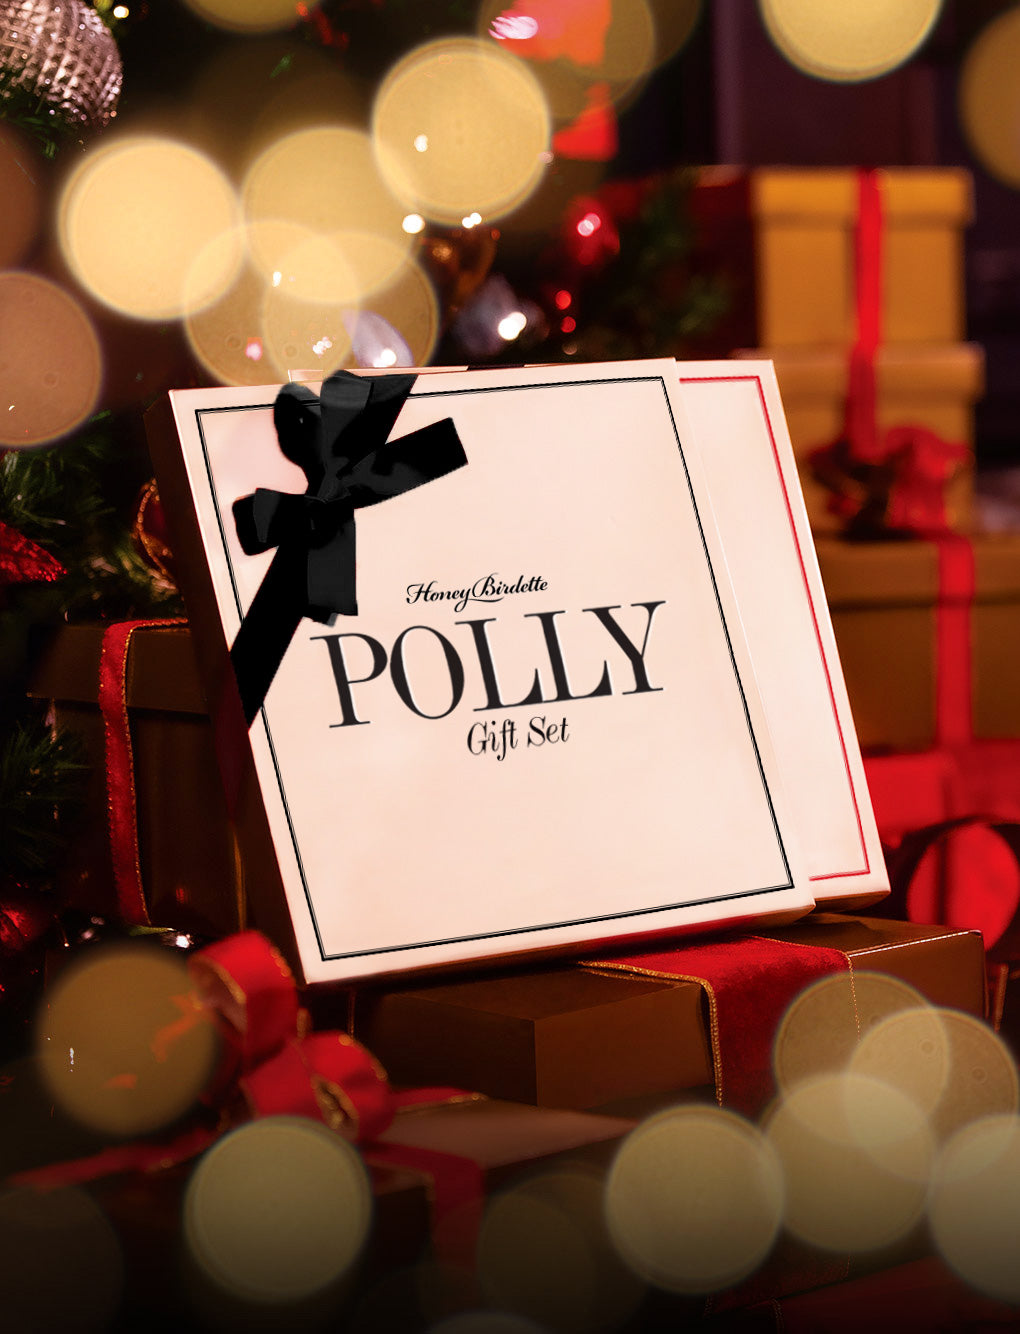 Polly Black Bralette Gift Set